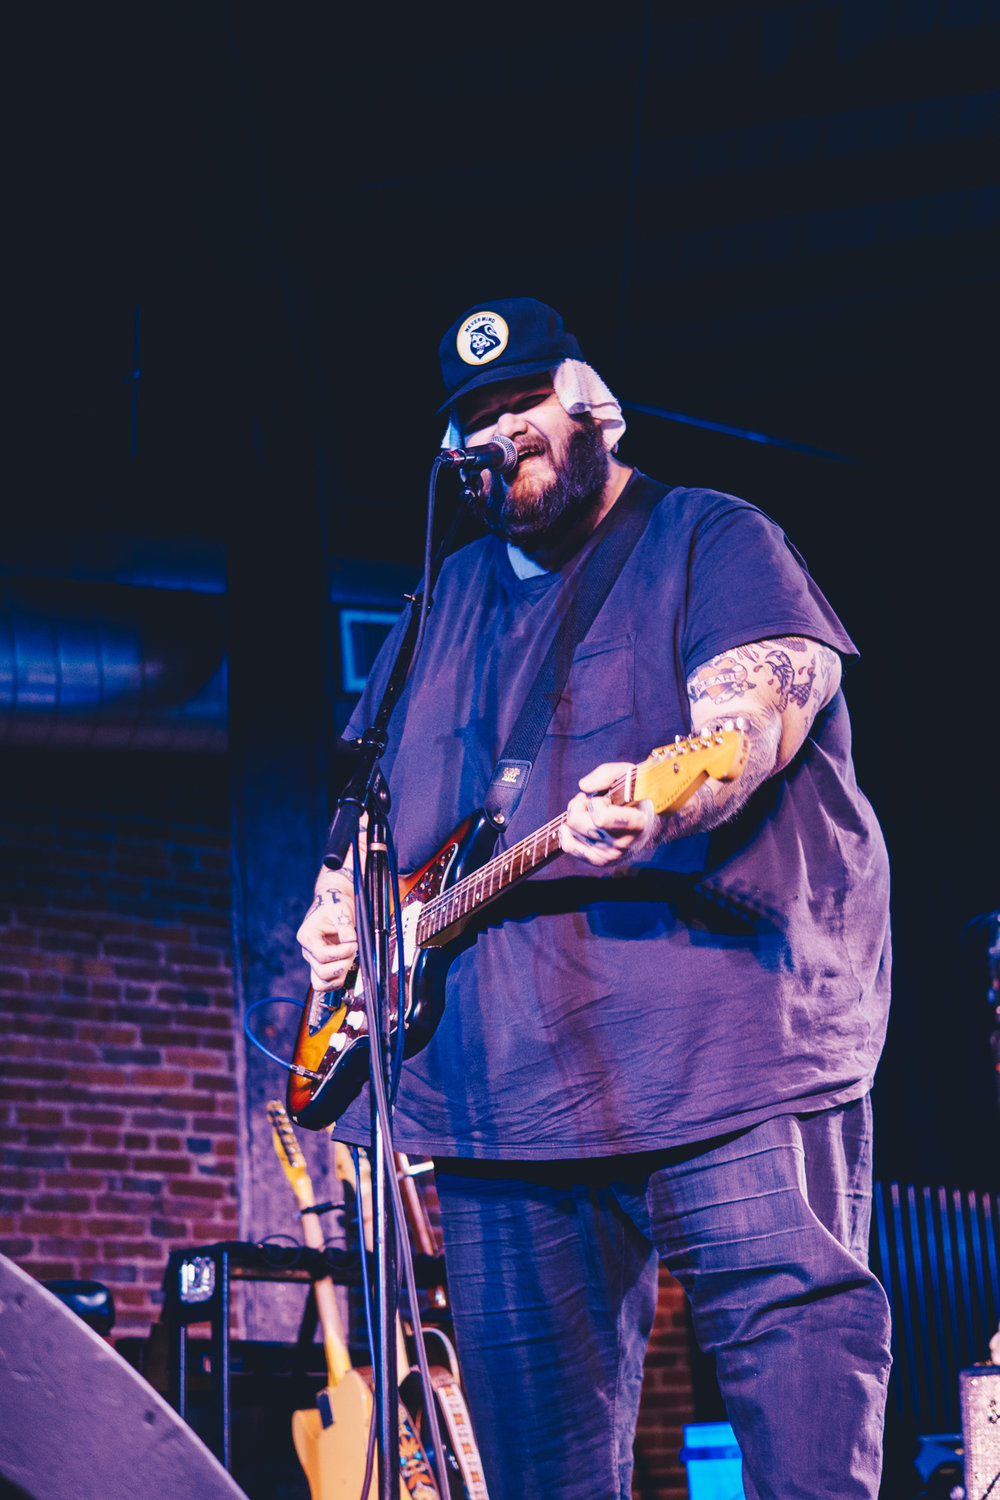 John Moreland - Britton Strickland (8 of 15).jpg